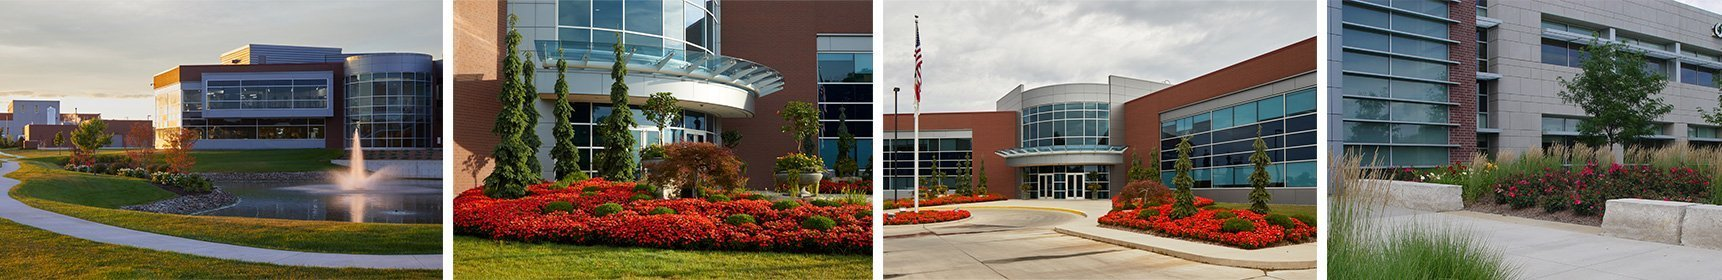 Commercial Landscape Design and Installation